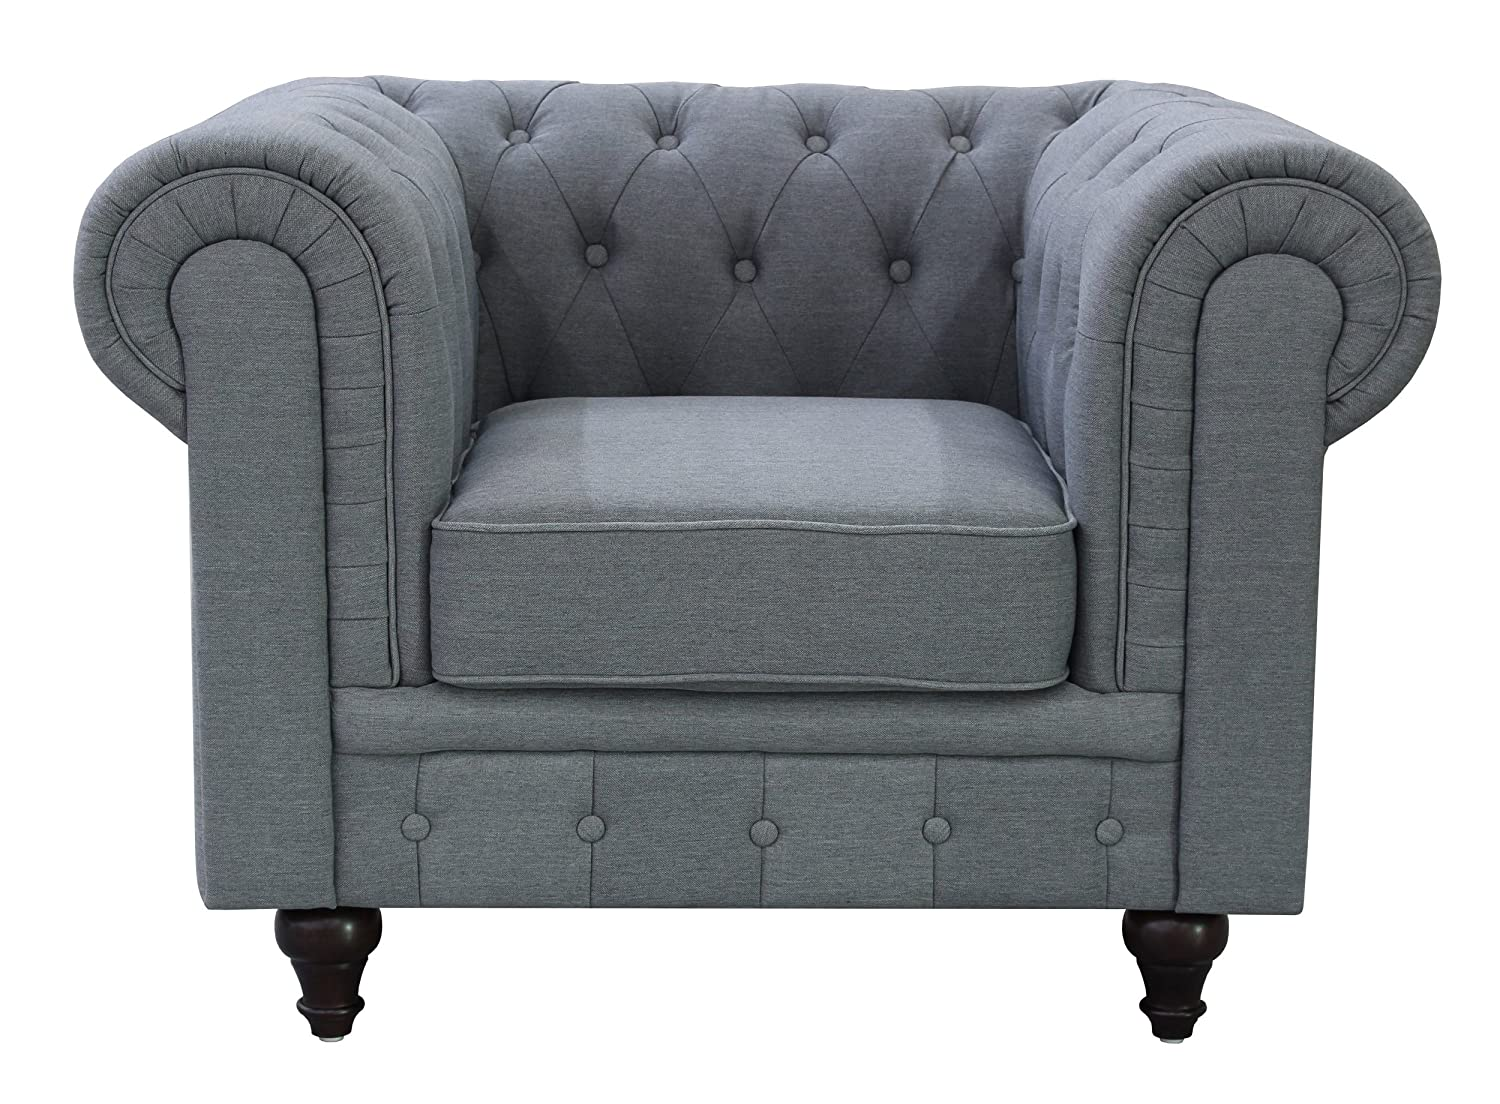 US Pride Furniture S5070-L Linen Fabric Chesterfield Sofa Set, Grey